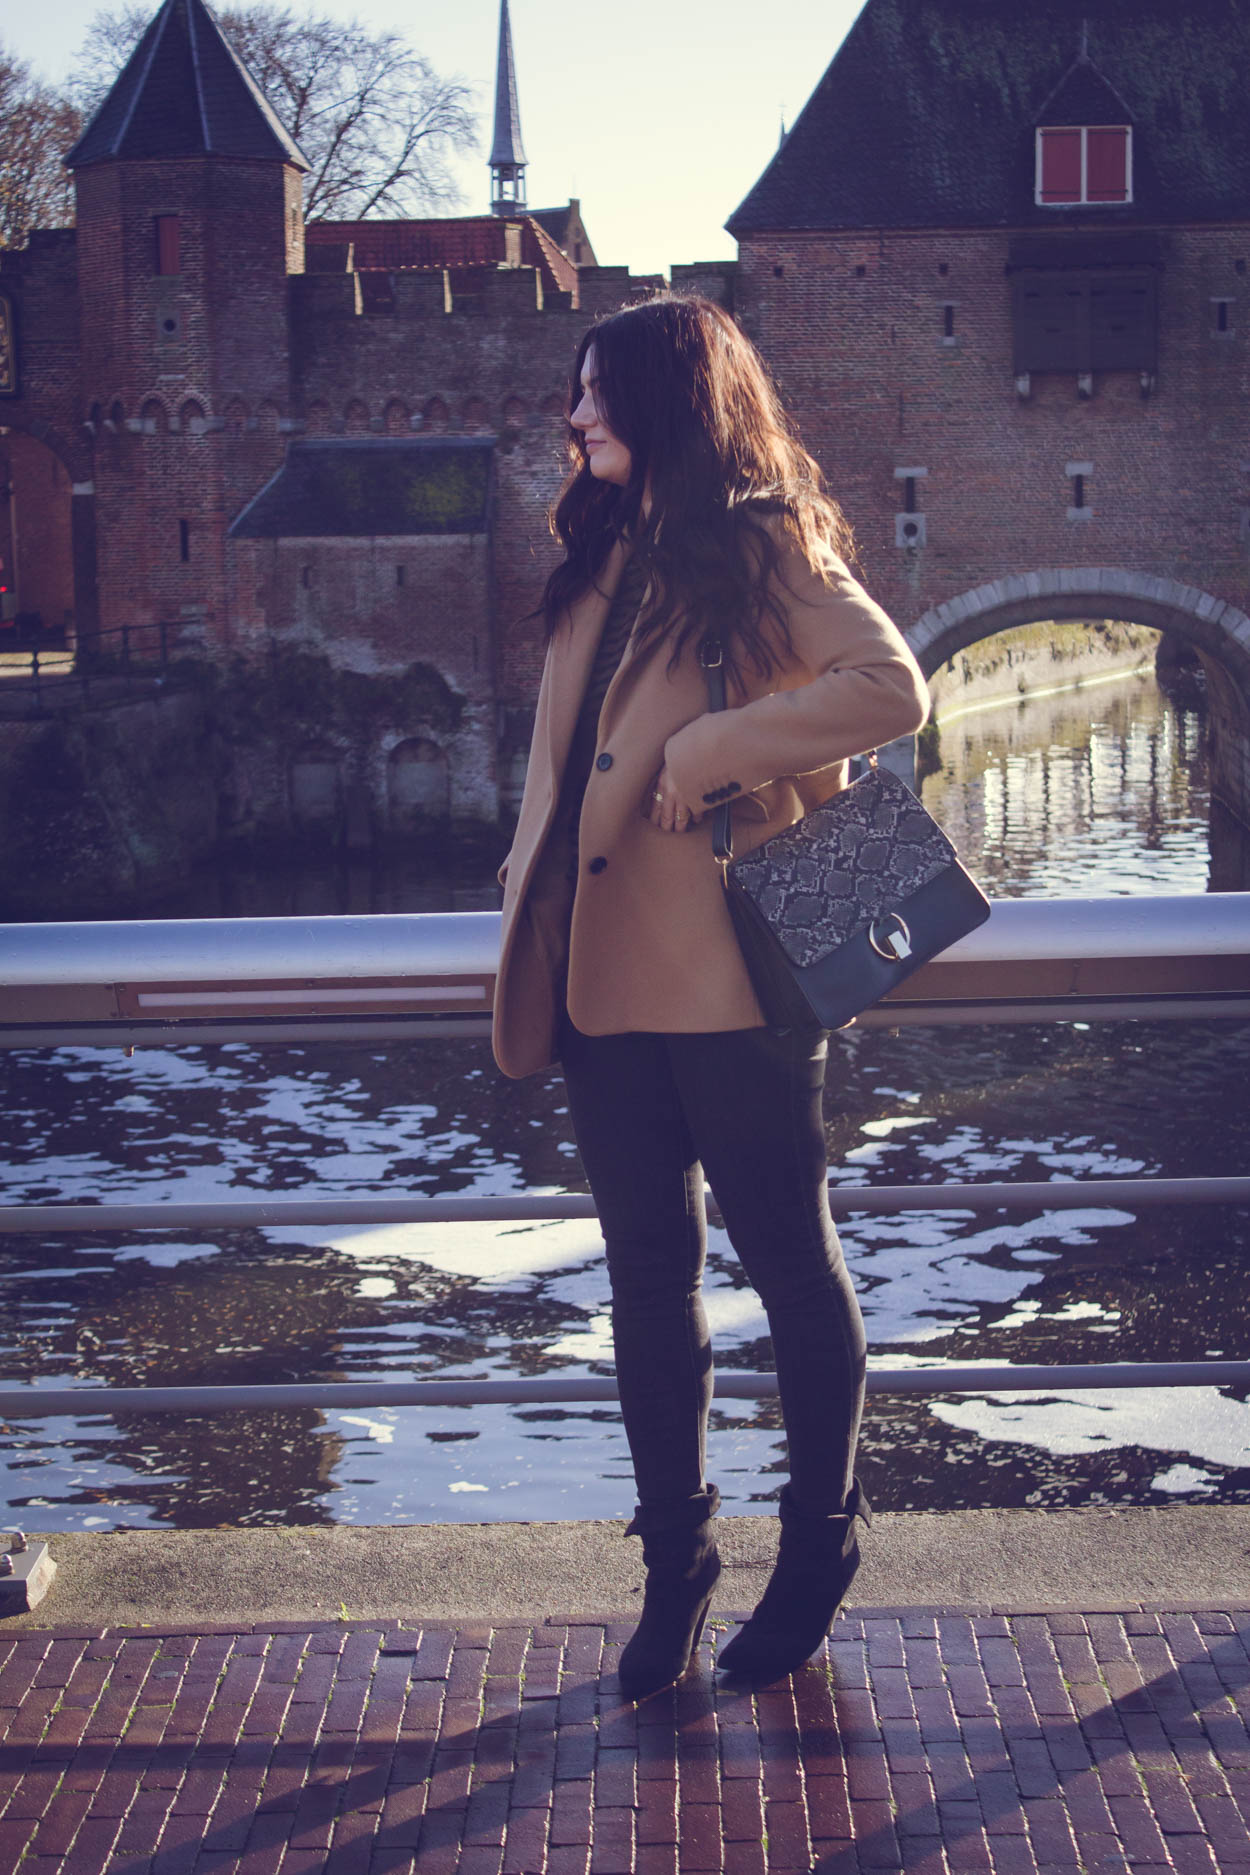 CREATE YOUR OWN CHIC CURATED WARDROBE   THECHICITALIAN   My goal this year is to be more mindful of what I buy and only buy things that work for my personal style